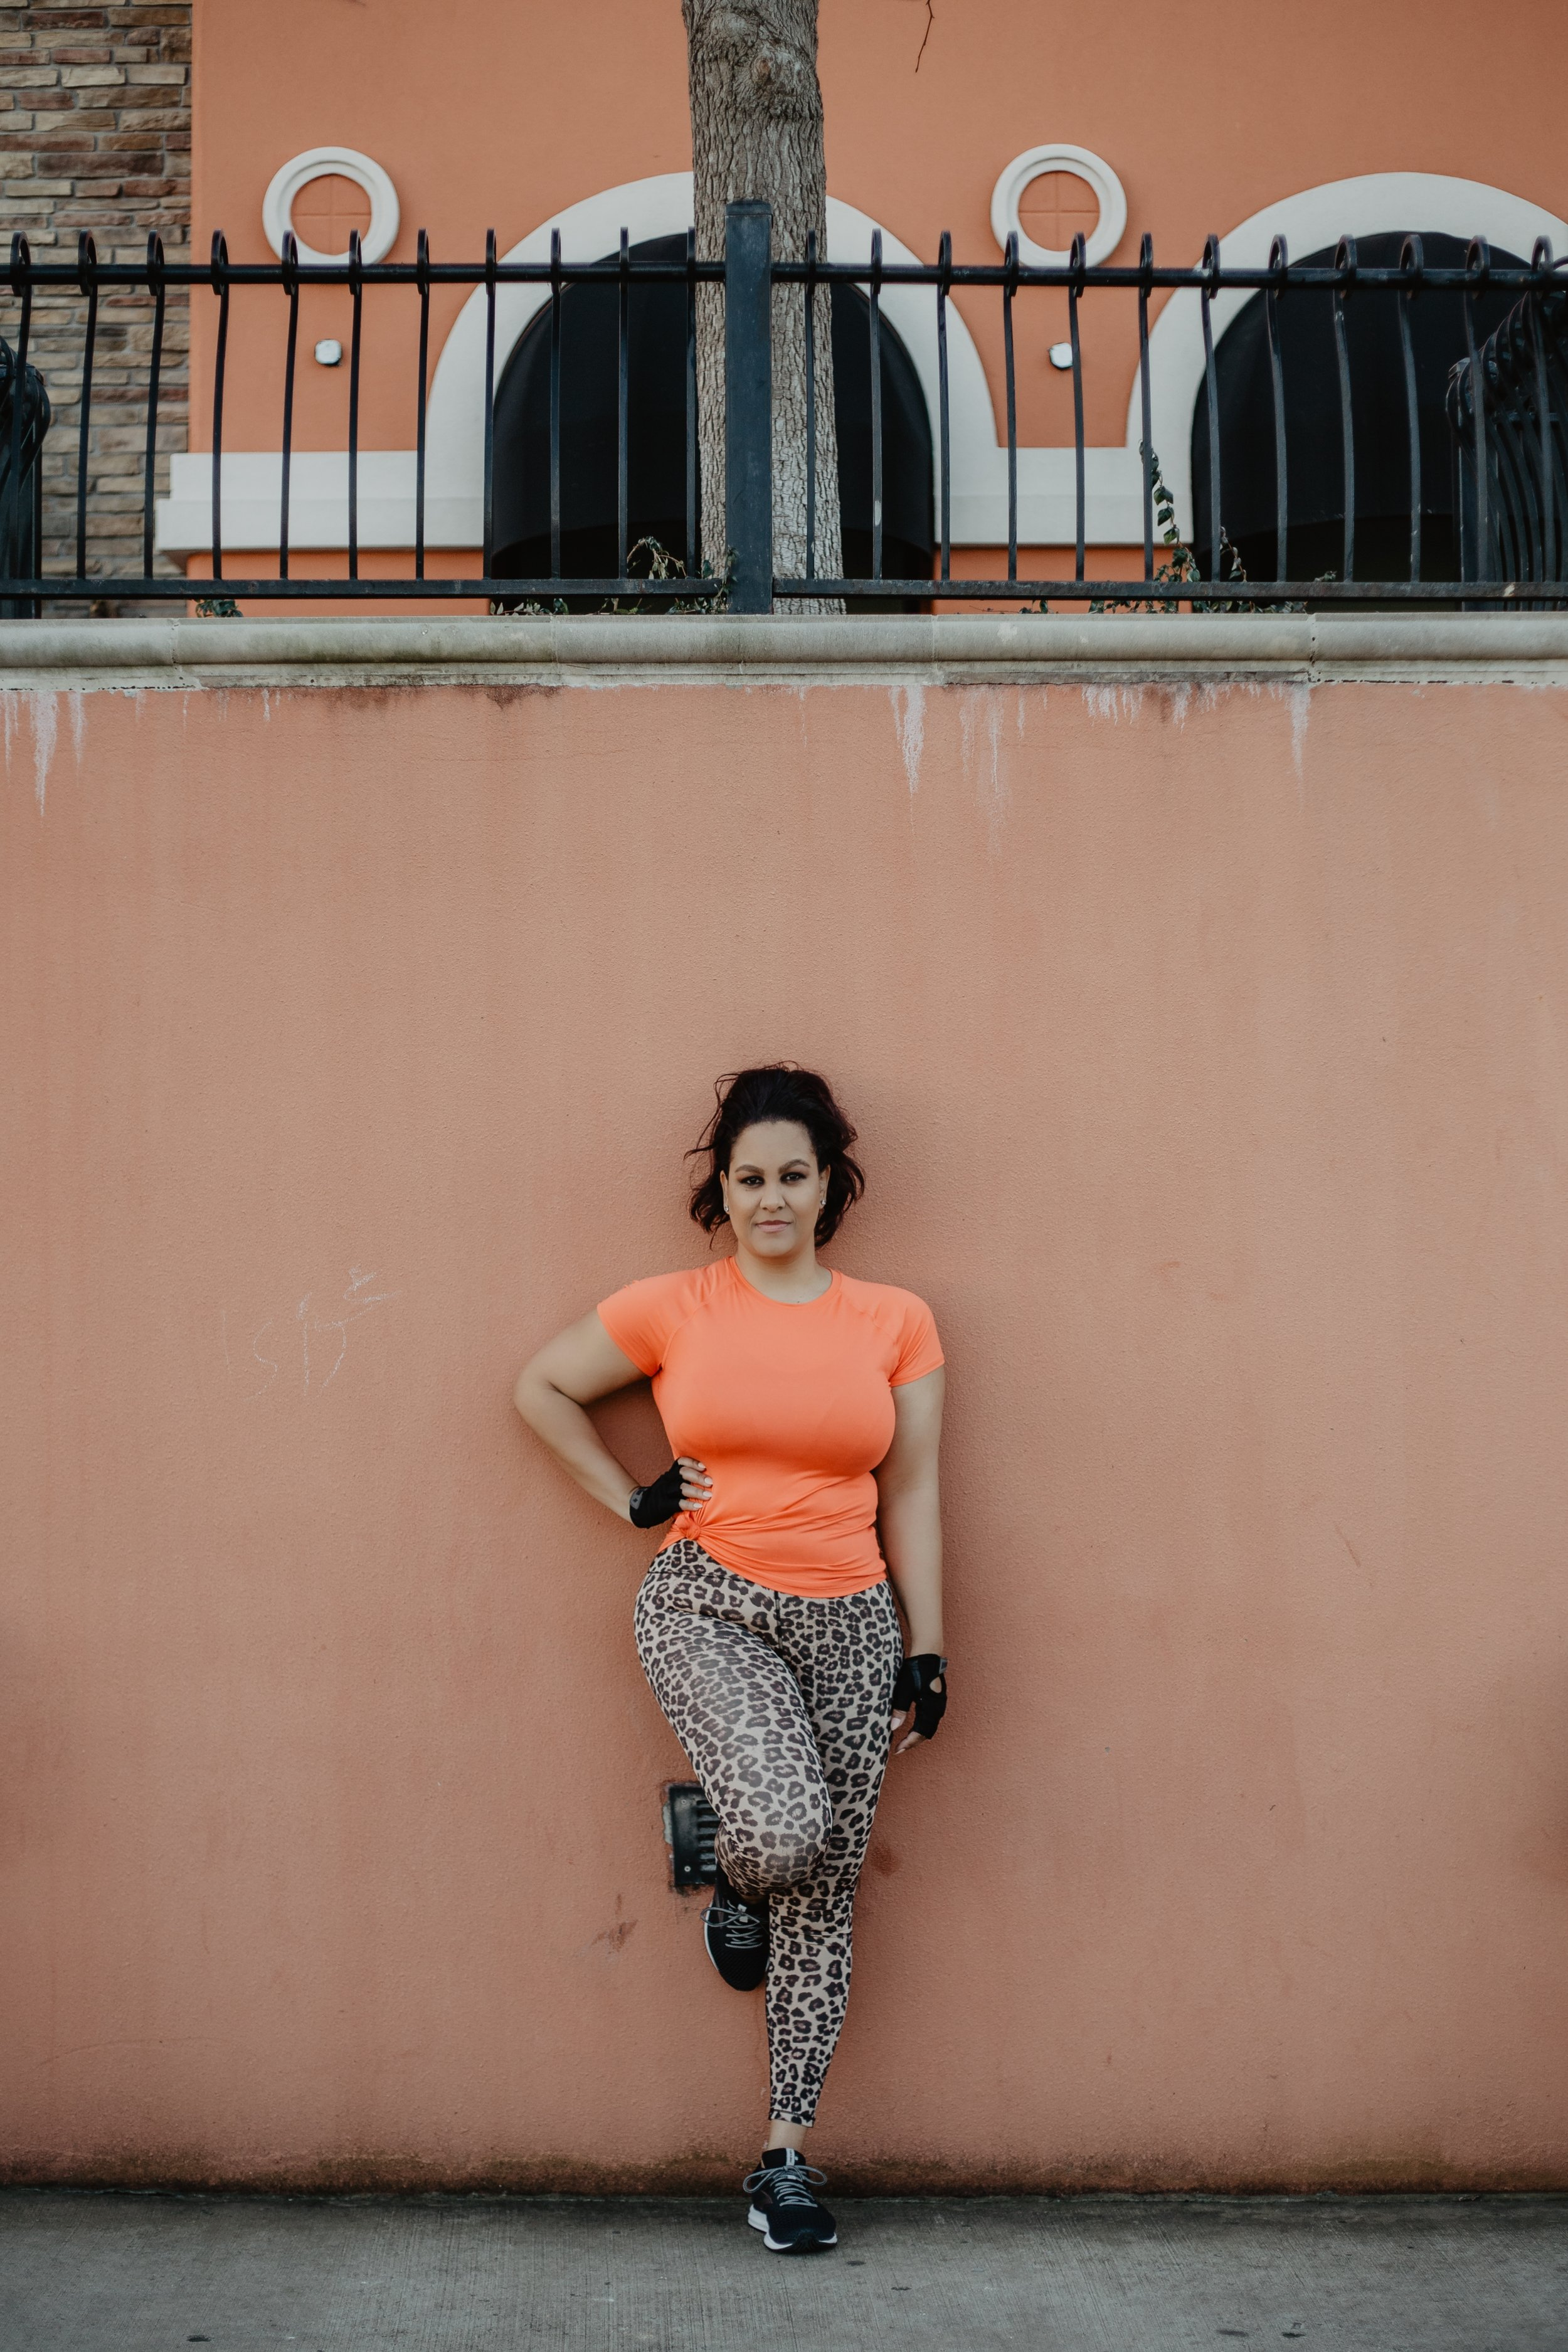 Outfit Deets - Orange Top: C9 Champion via TargetLeopard Print Workout Leggings: Good AmericanGloves: Academy (similar here)Running Shoes: Brooks Revel 2